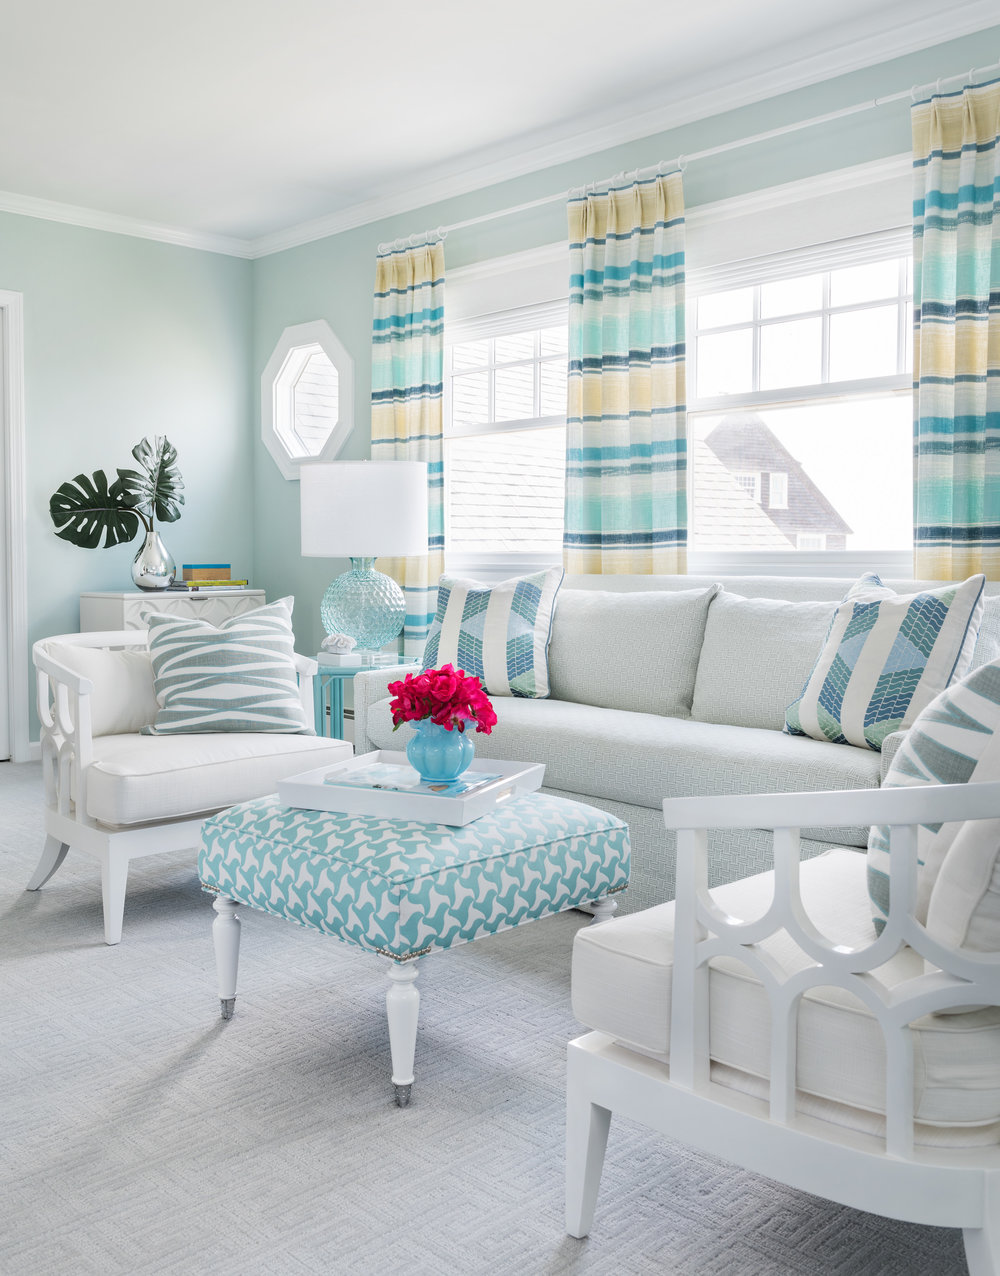 interior design, Easton's Beach, Newport, Rhode Island, beach decor, beach style, turquoise, aqua,